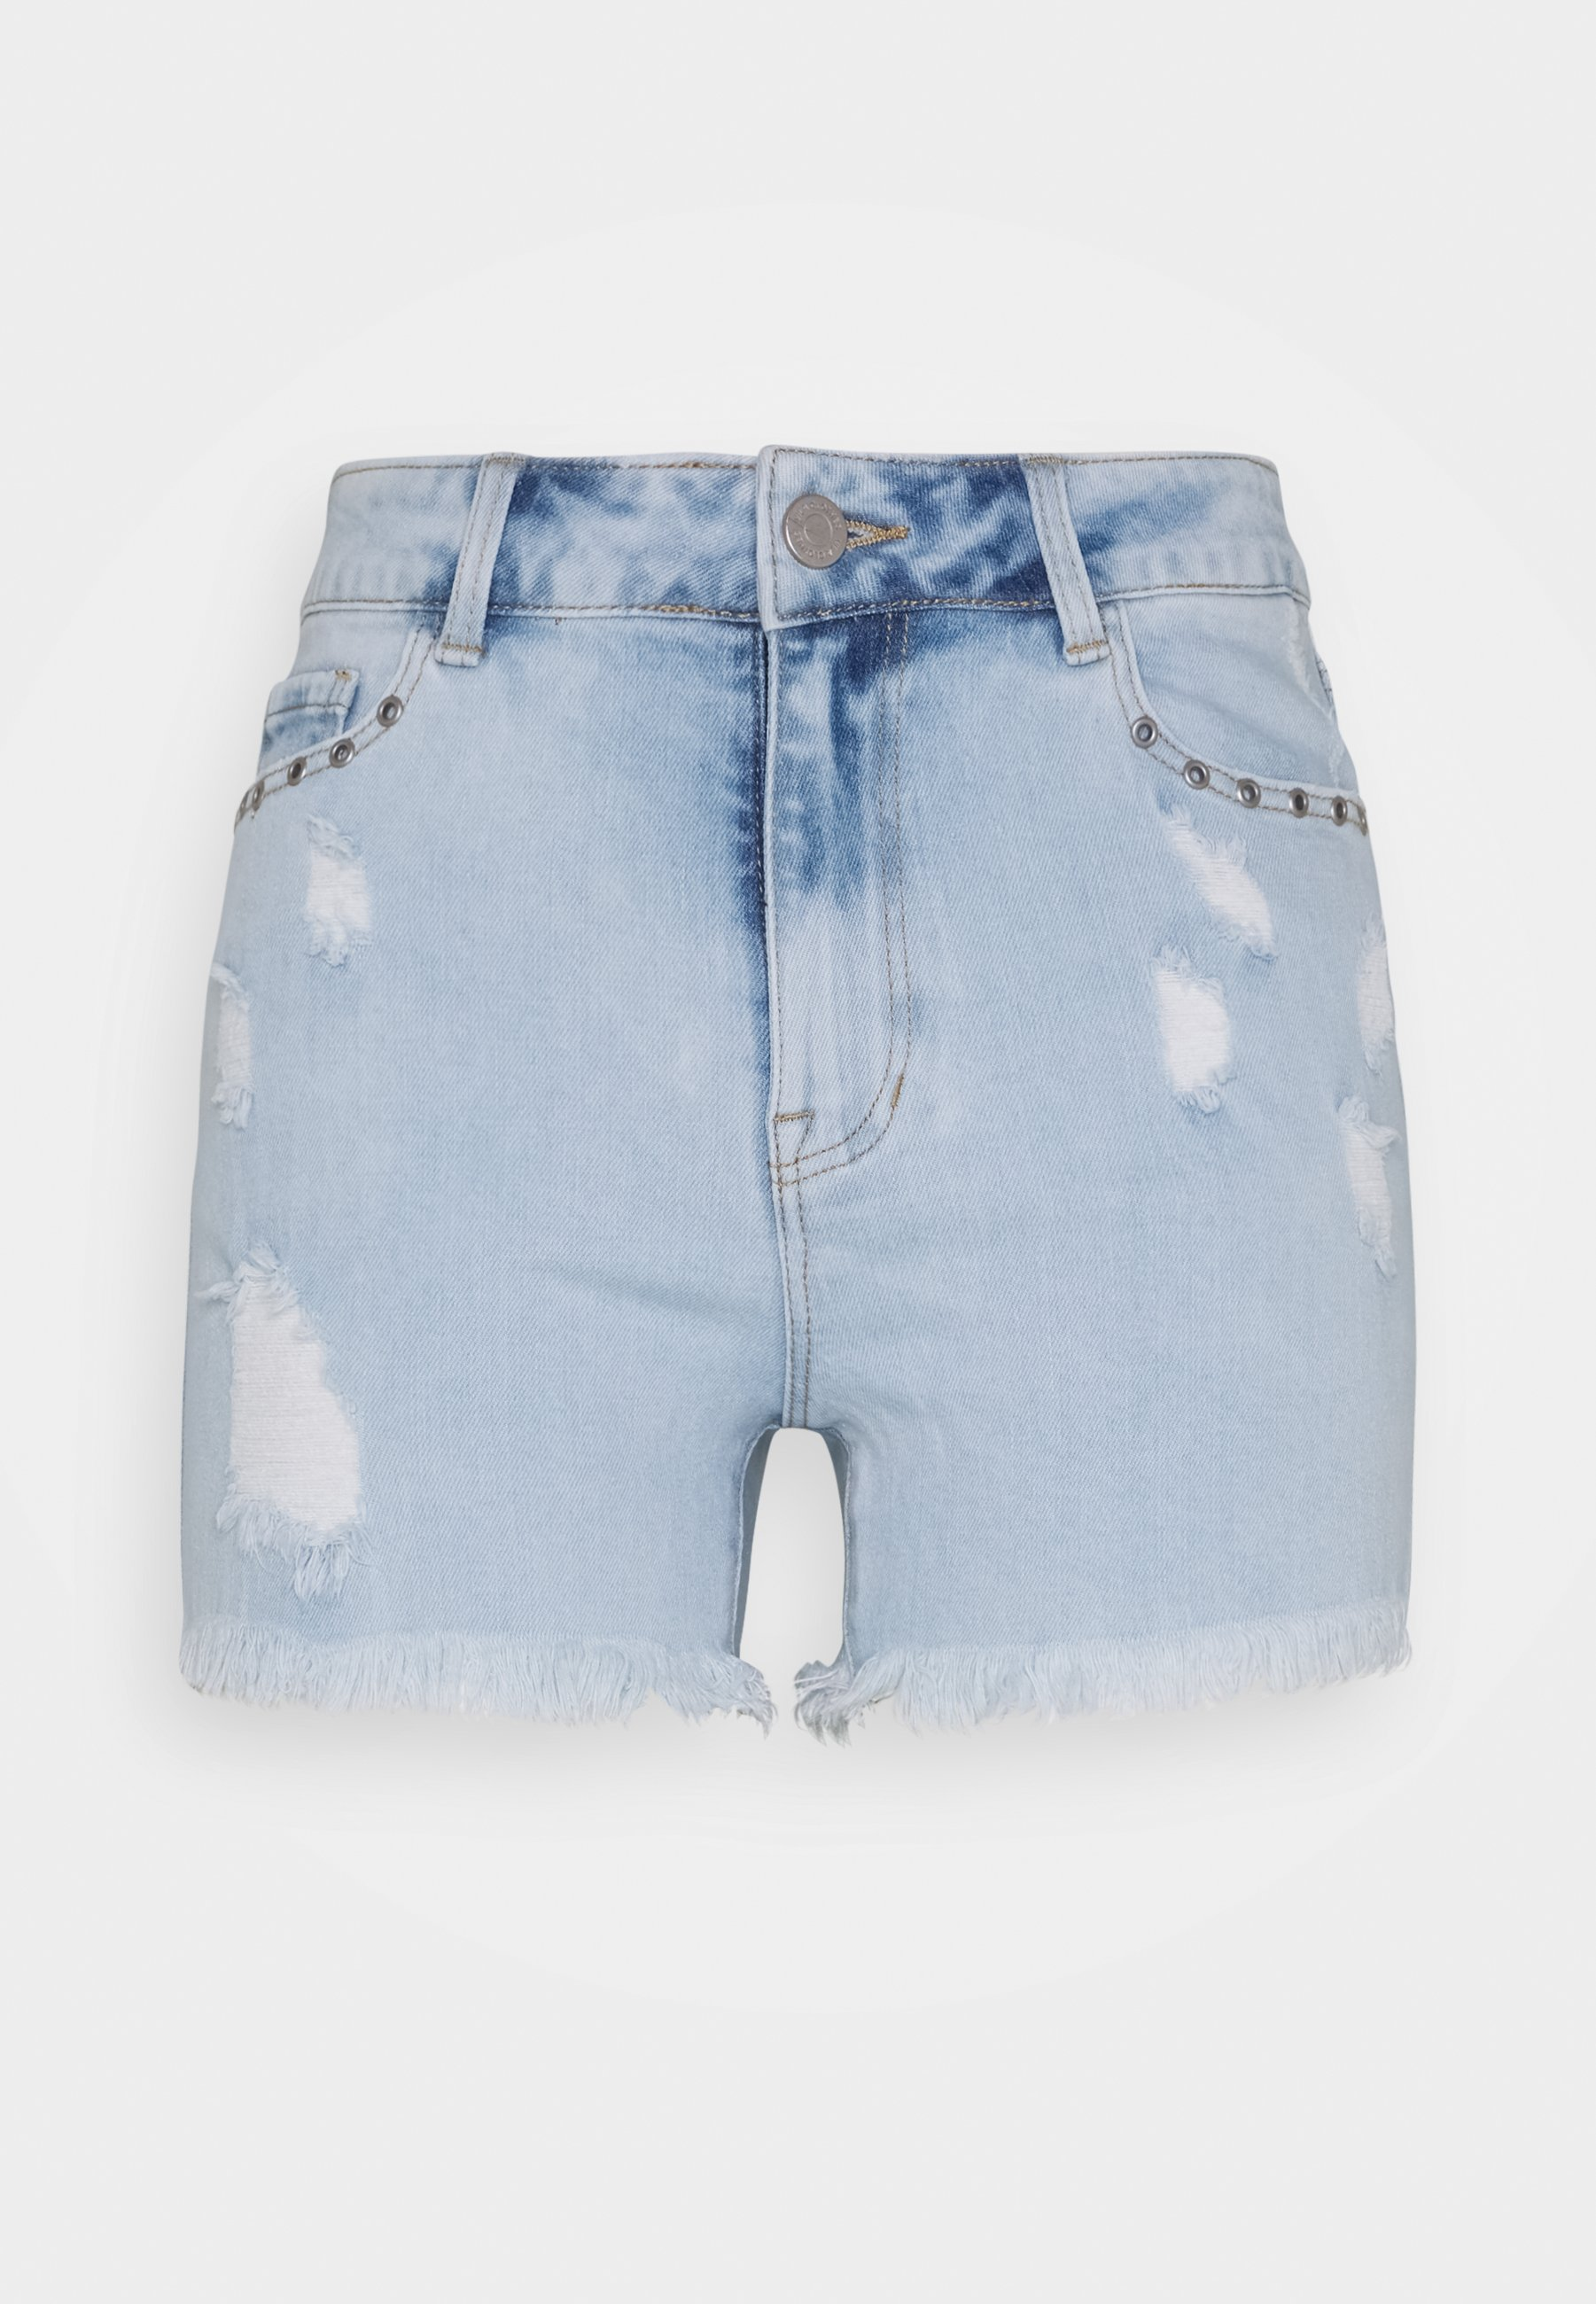 Vila VIROY FESTIVAL DENIM SHORTS - Shorts - light blue denim